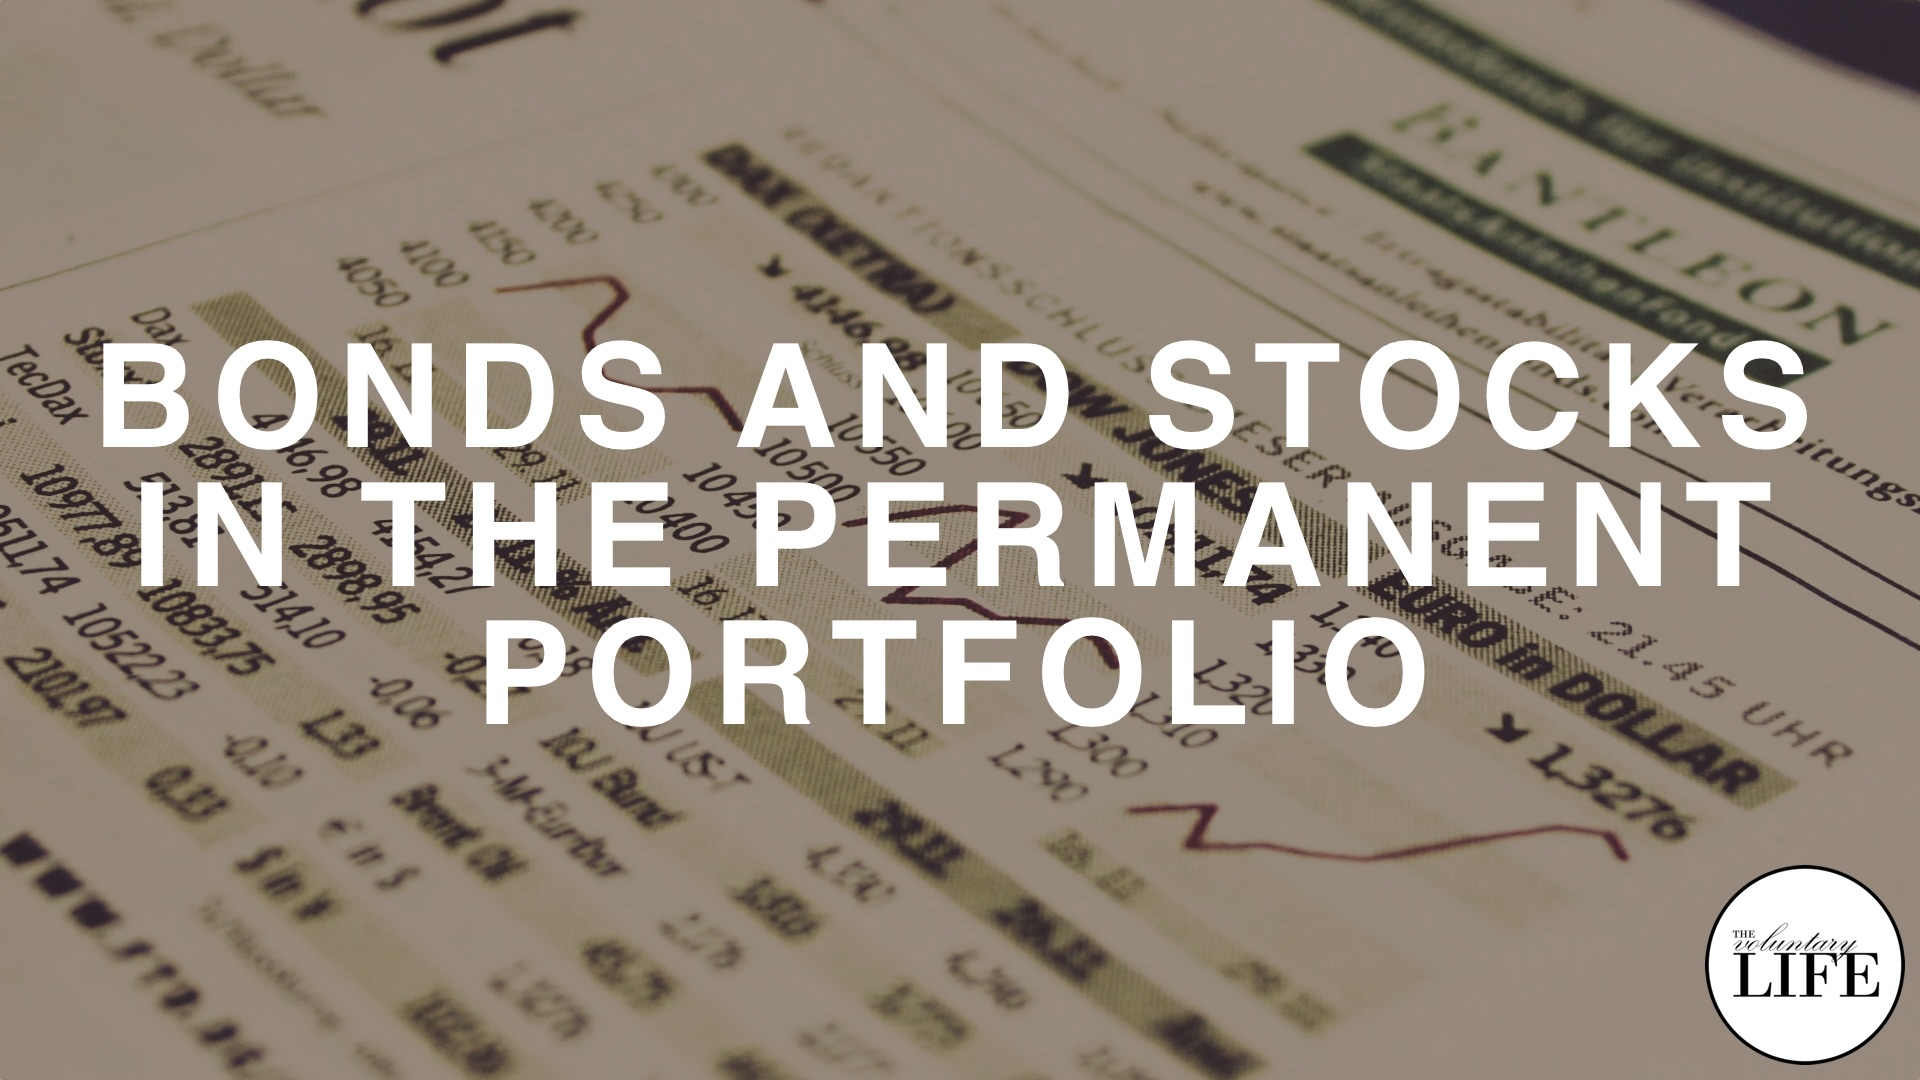 Bonus Episode 91: Bonds and Stocks in the Permanent Portfolio